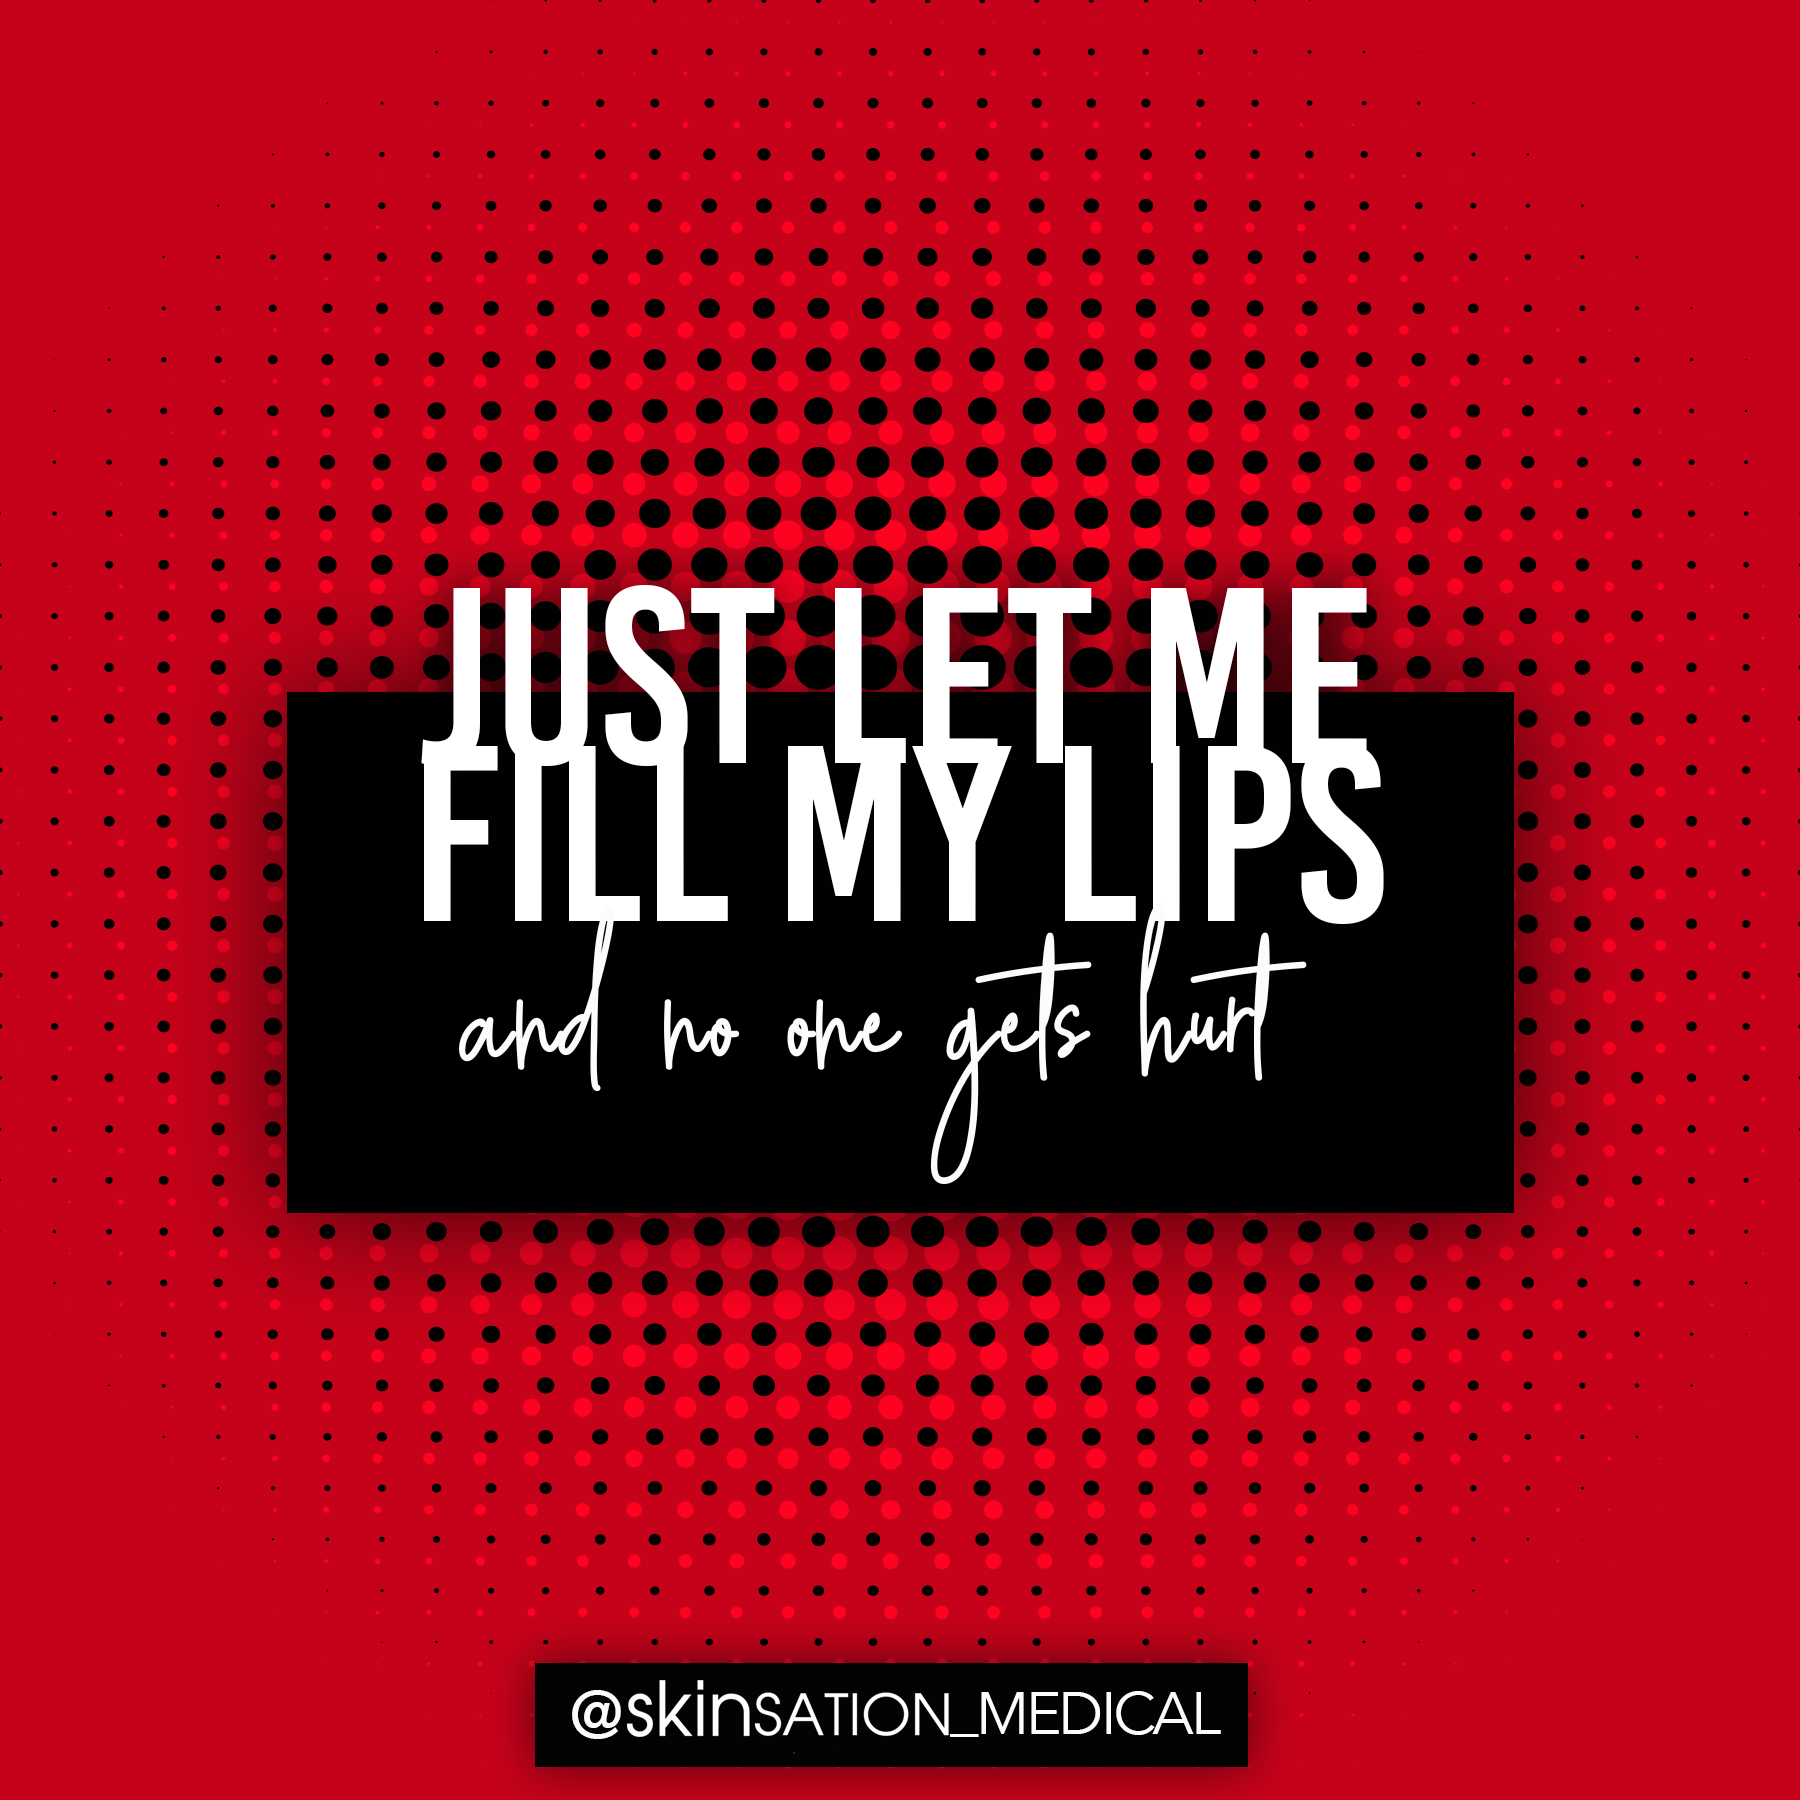 Fill my lips-1.png